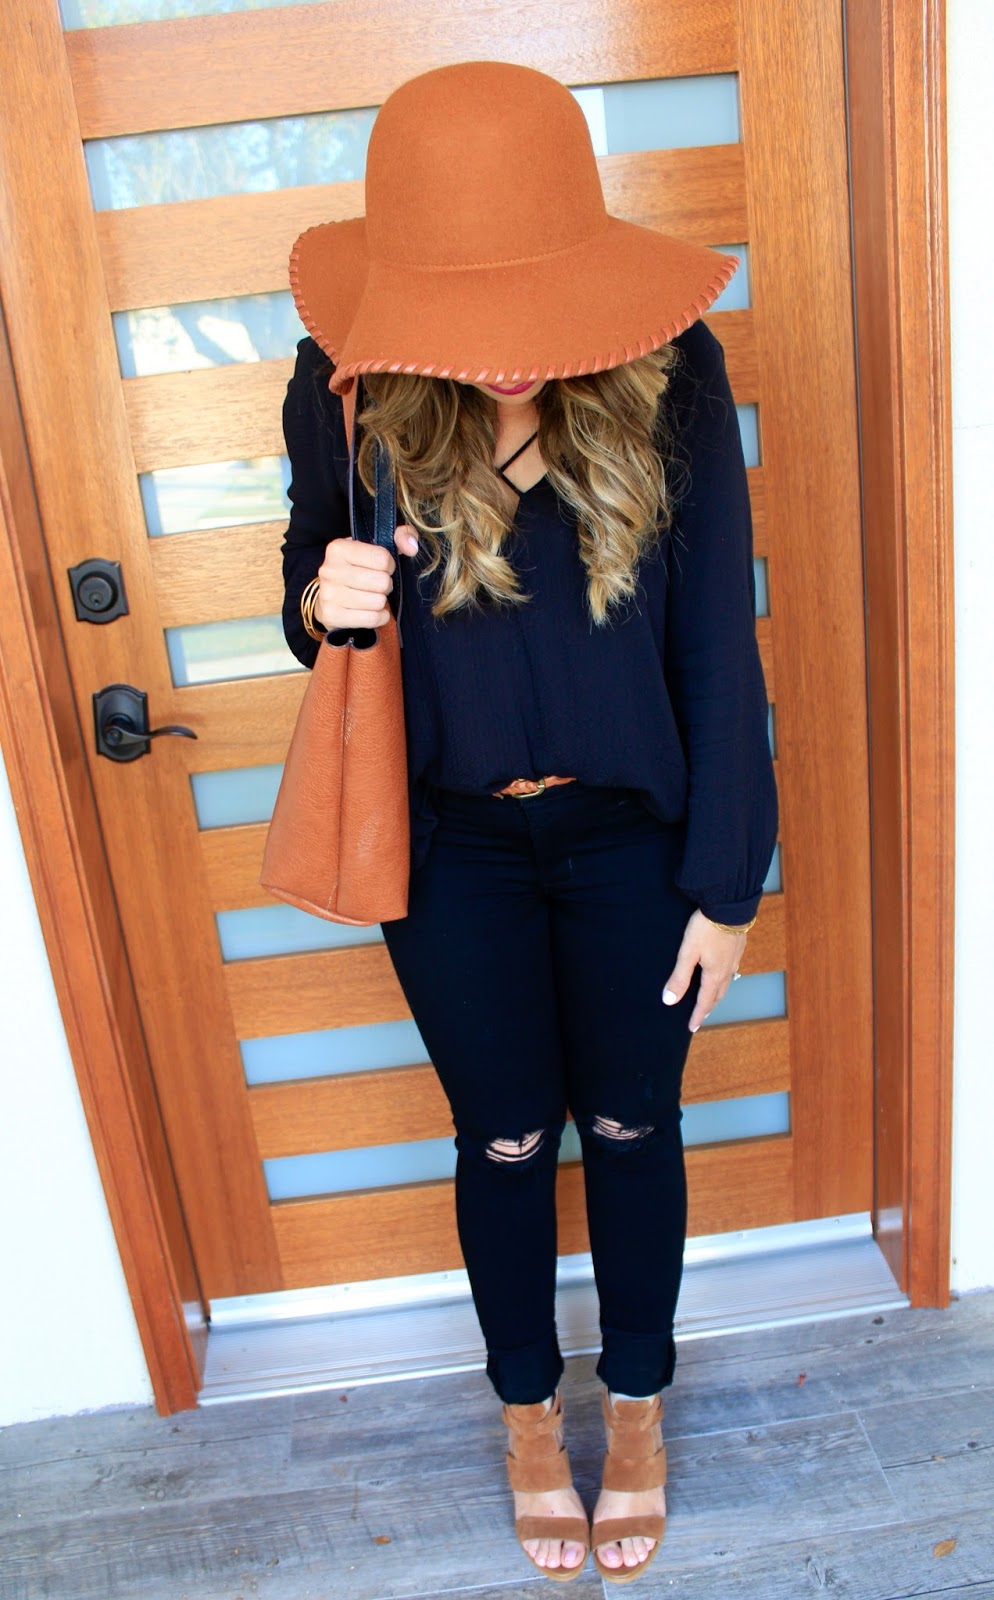 cognac and black outfit